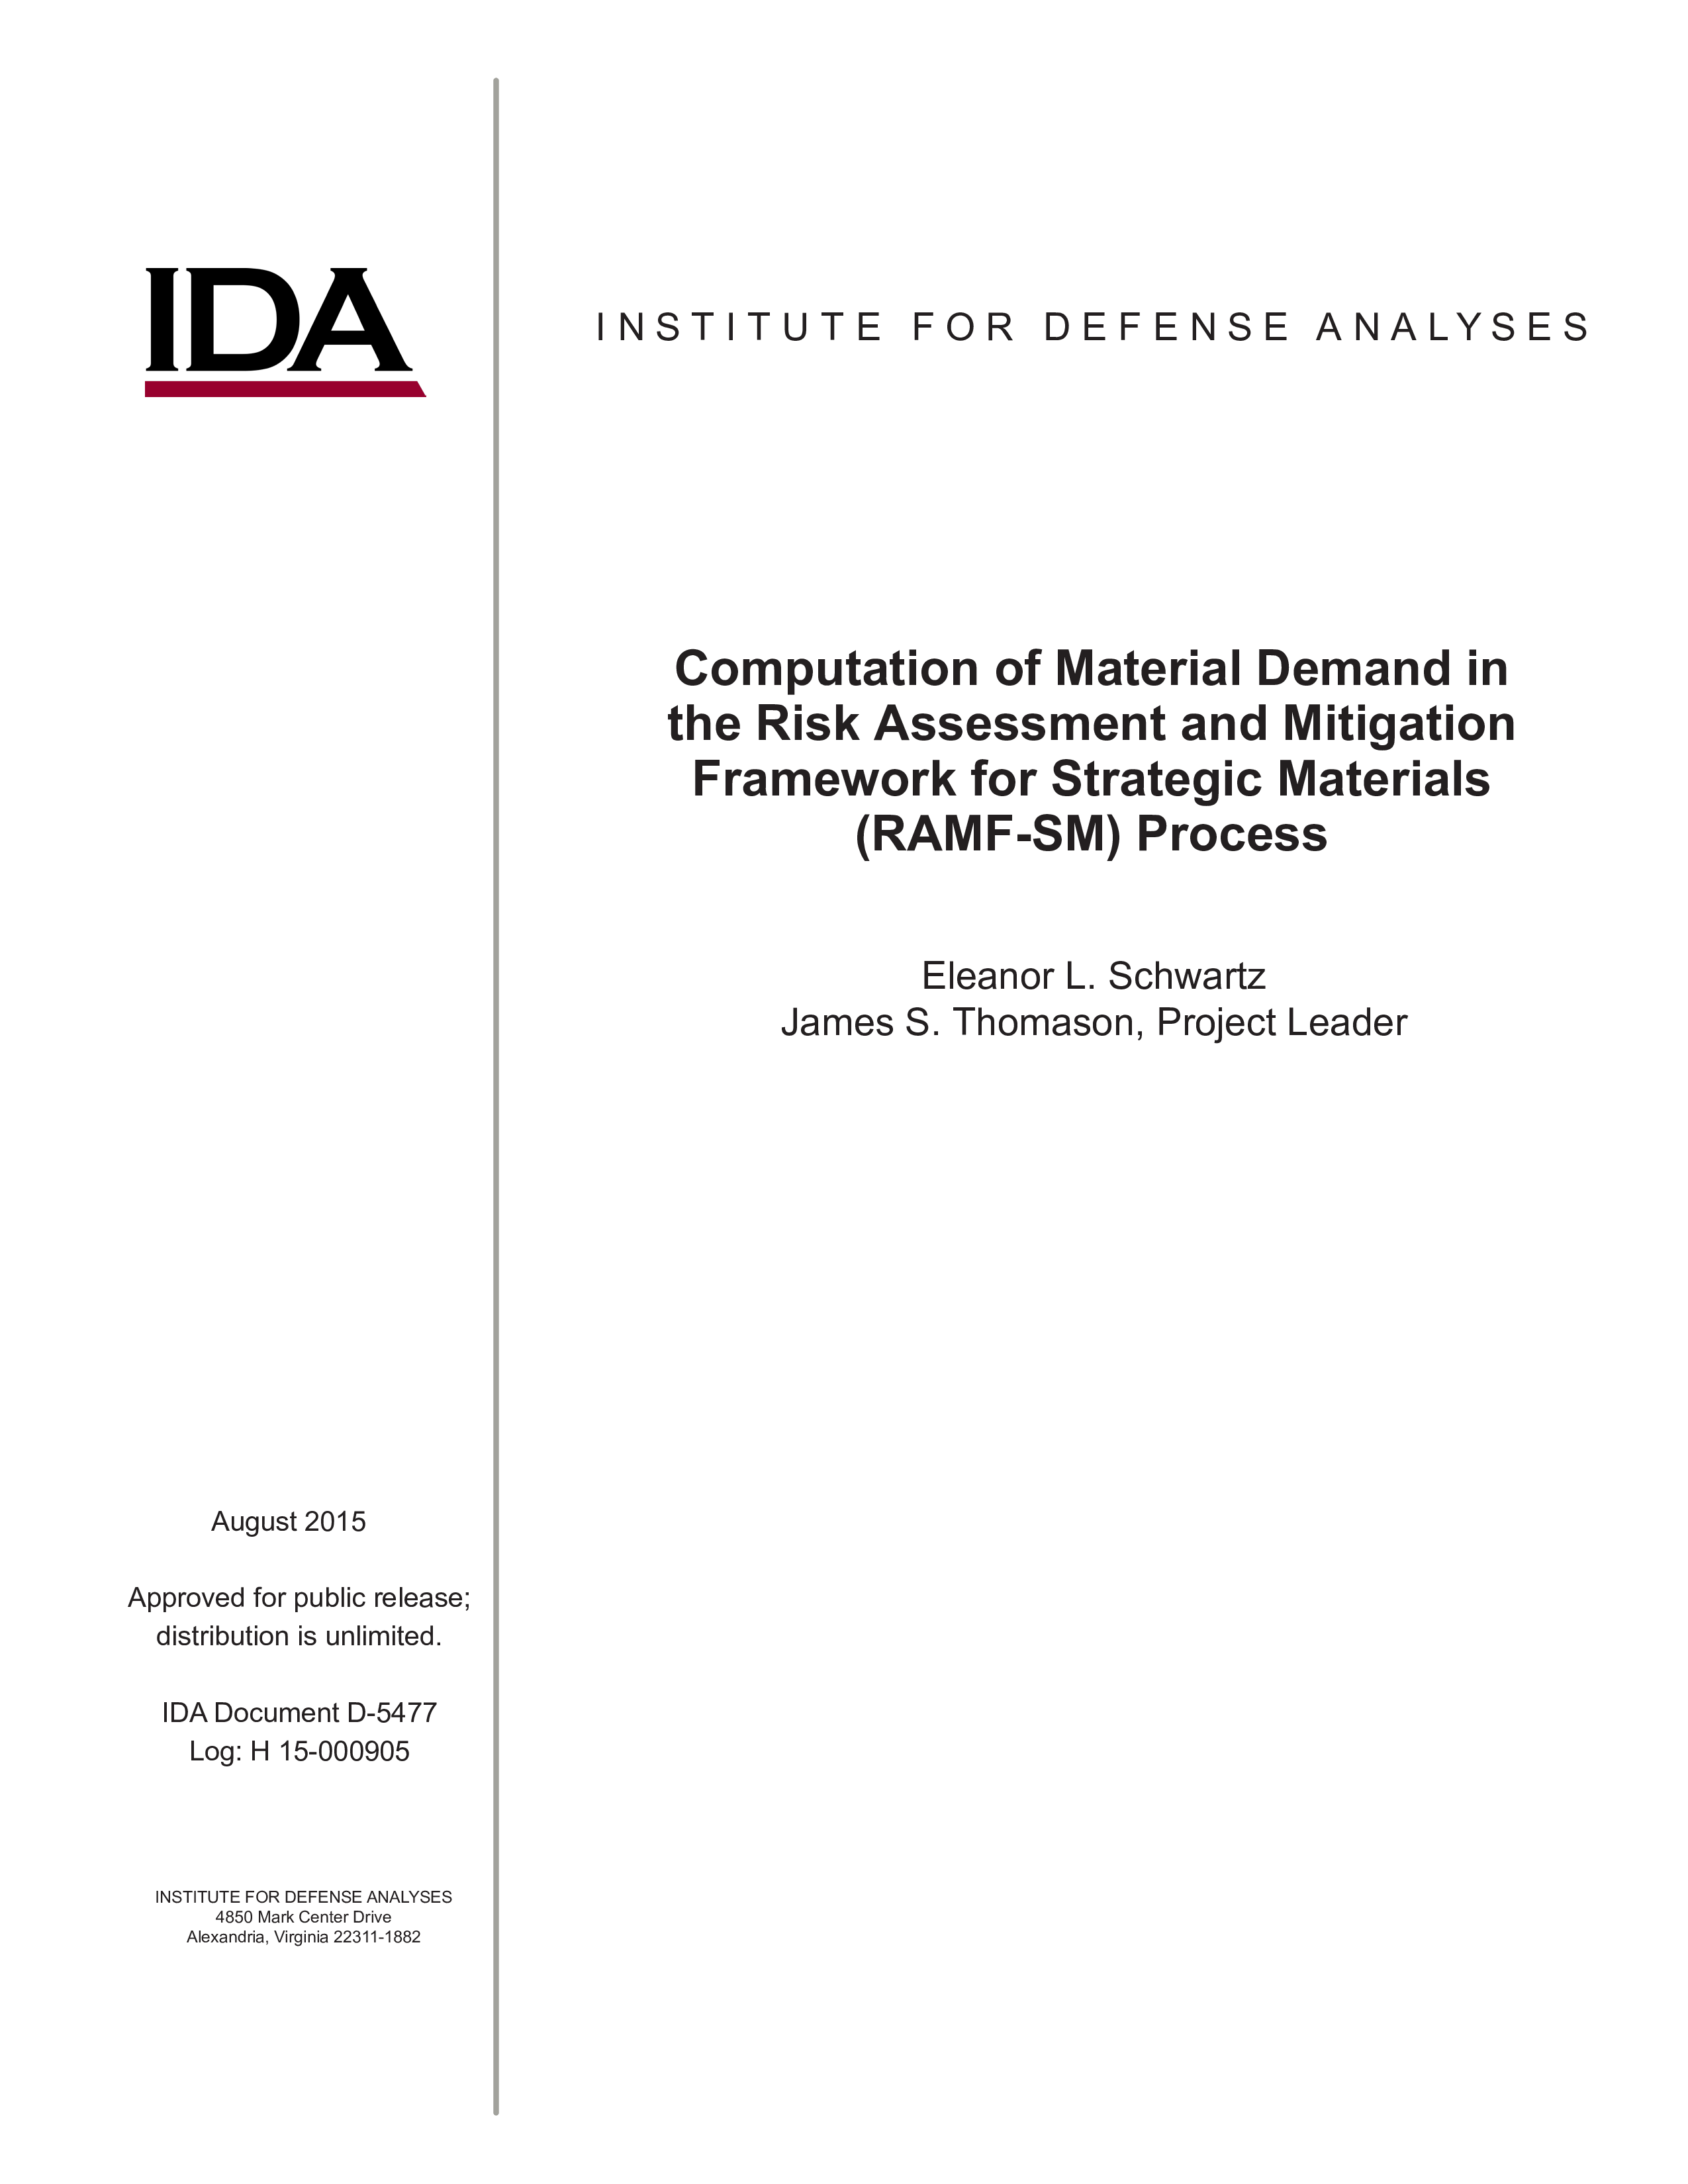 Computation of Material Demand in the Risk Assessment and Mitigation Framework for Strategic Materials (RAMF-SM) Process